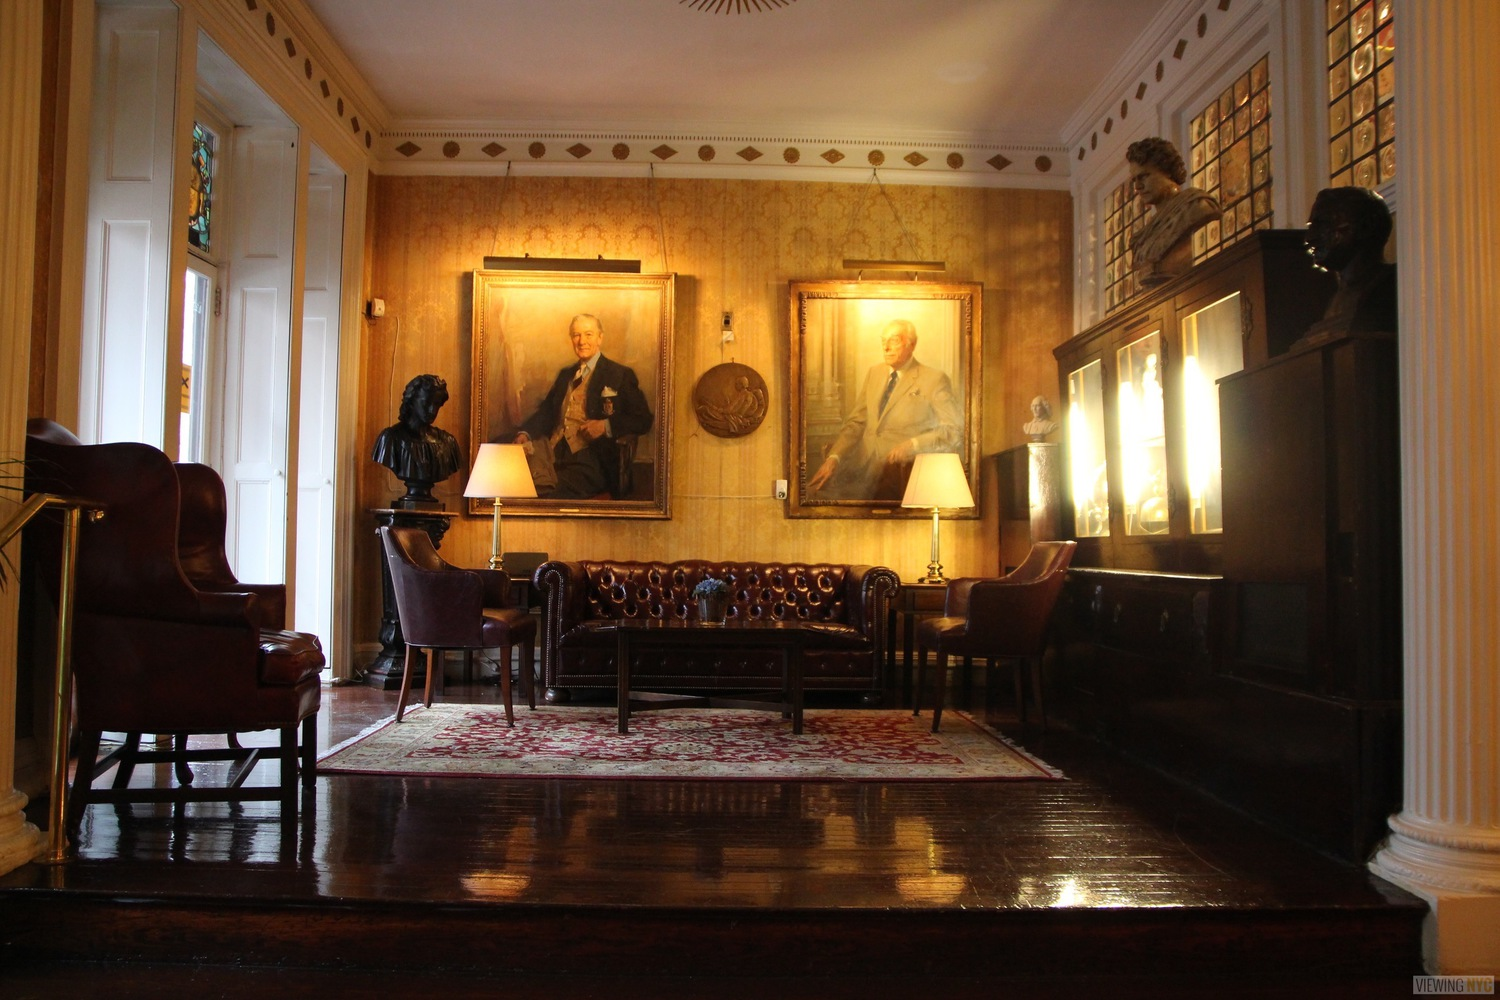 The Alcove Room